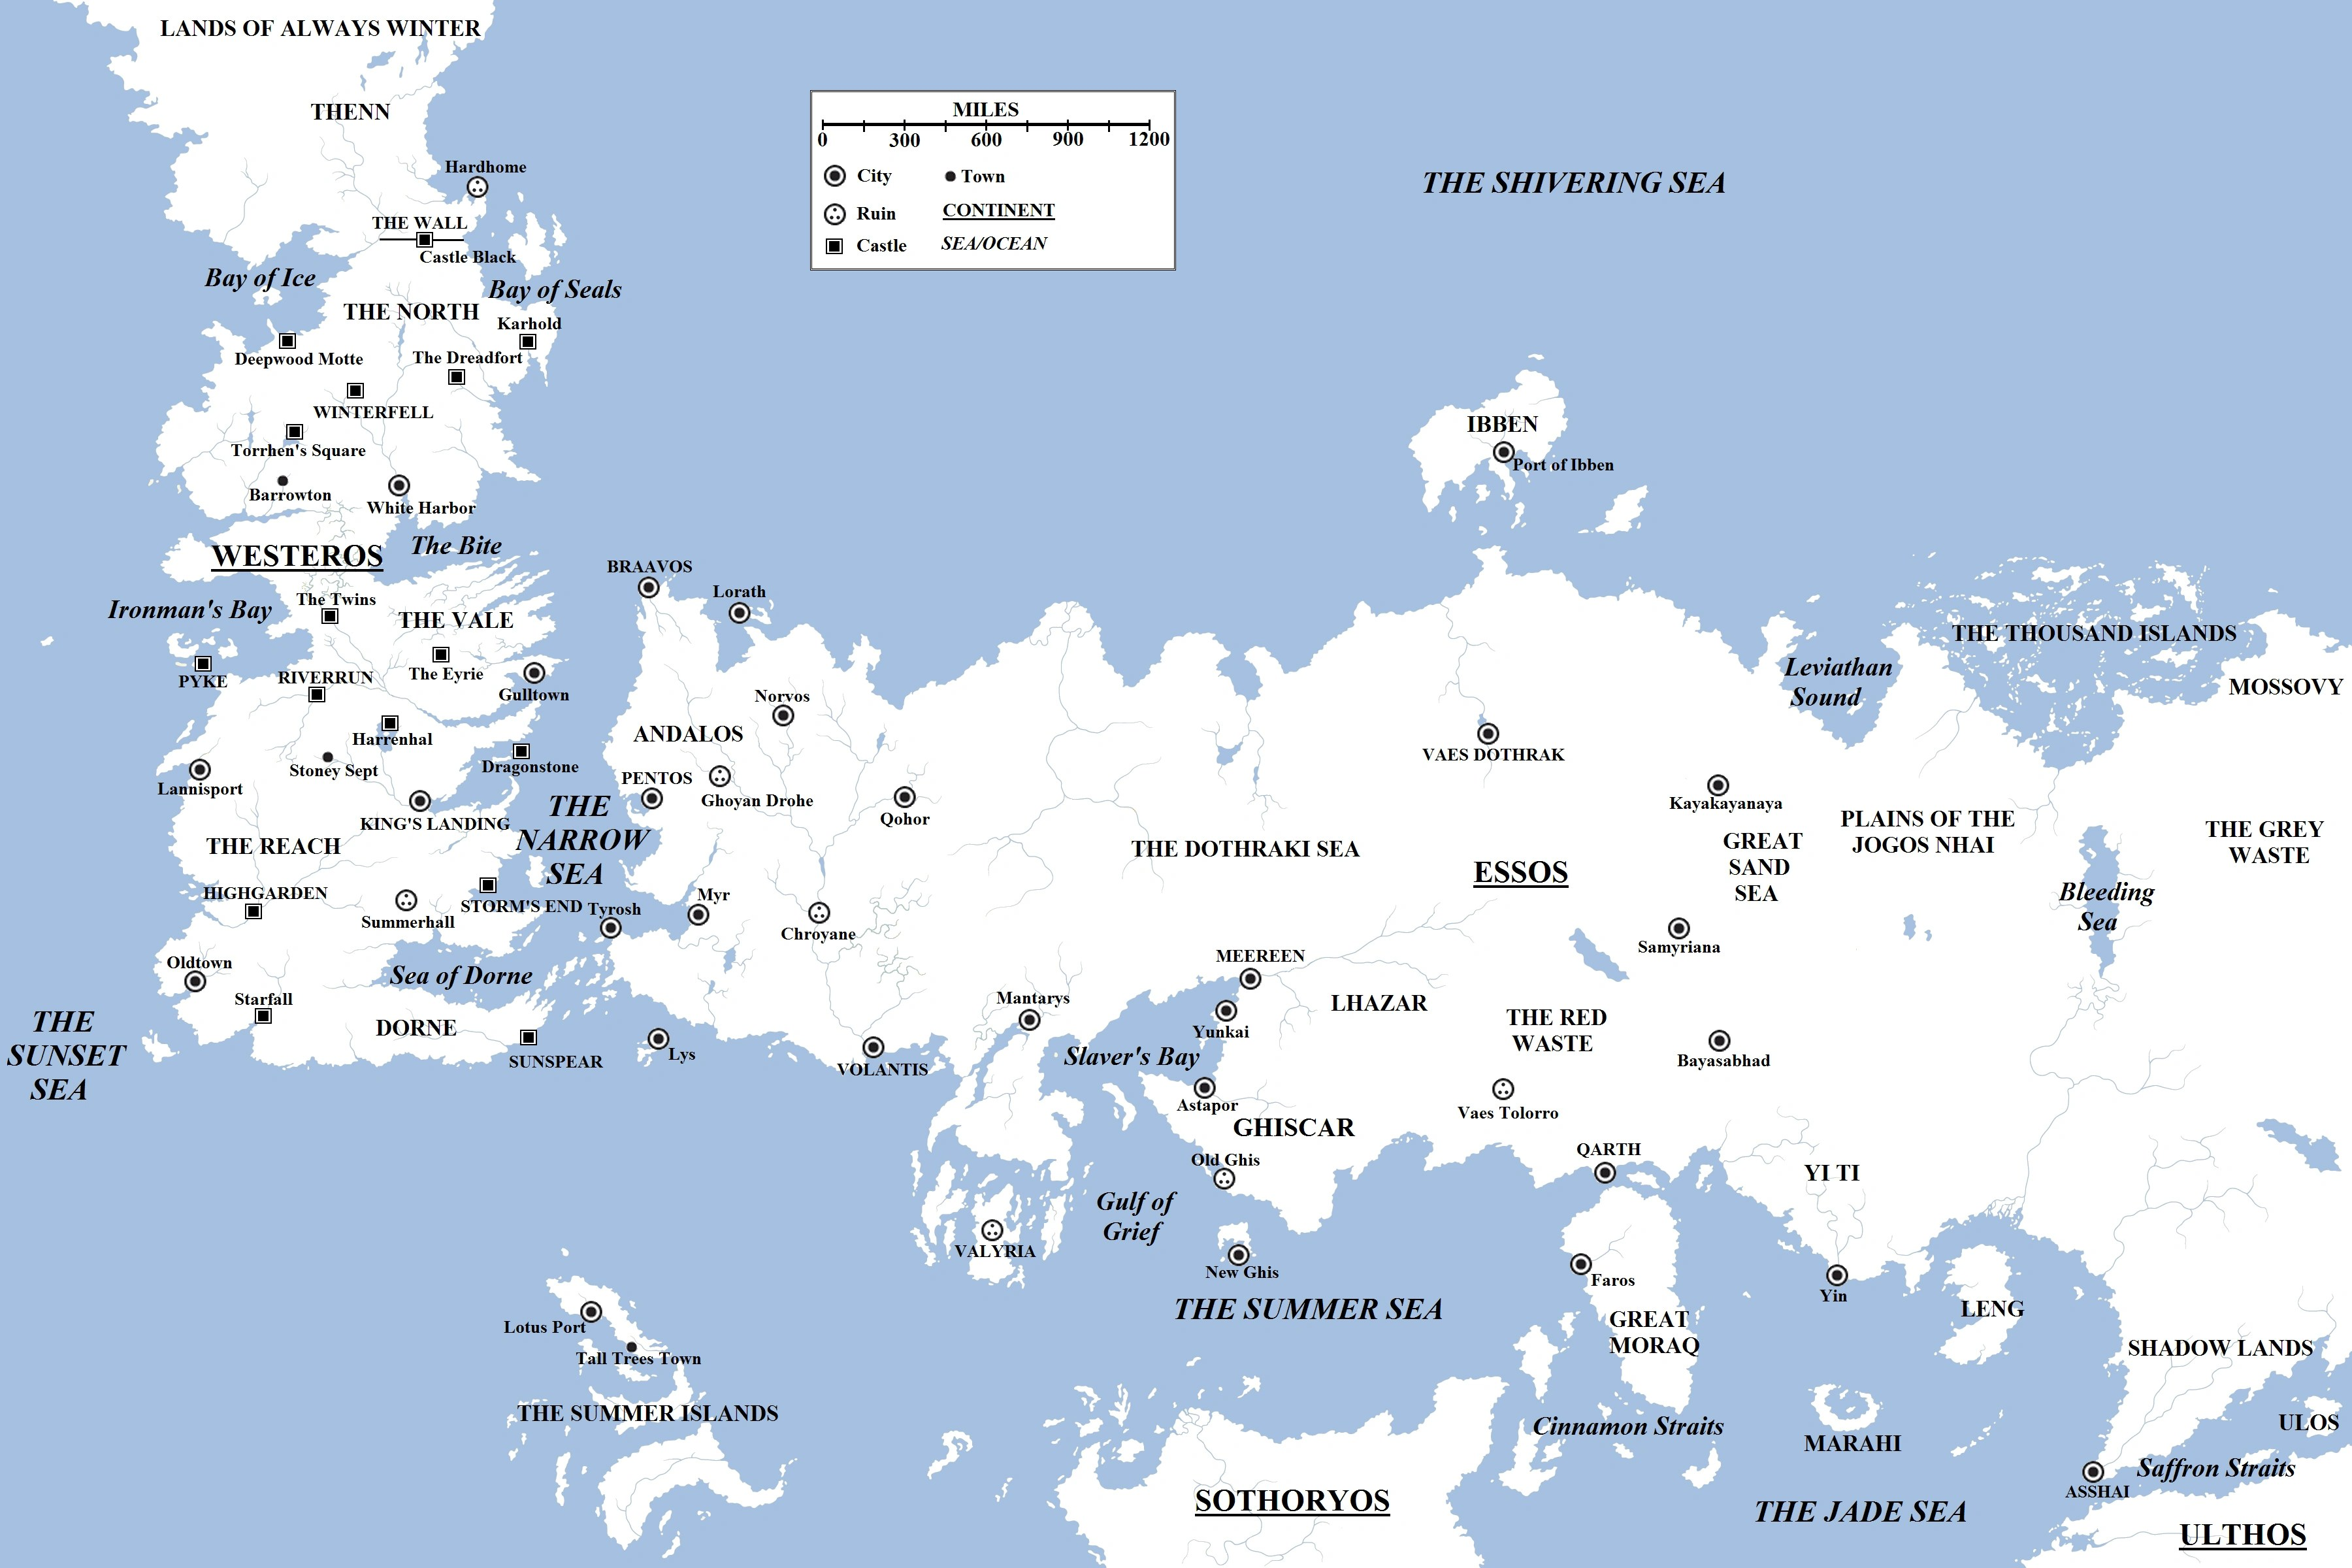 map of the world of A Song of Ice and Fire